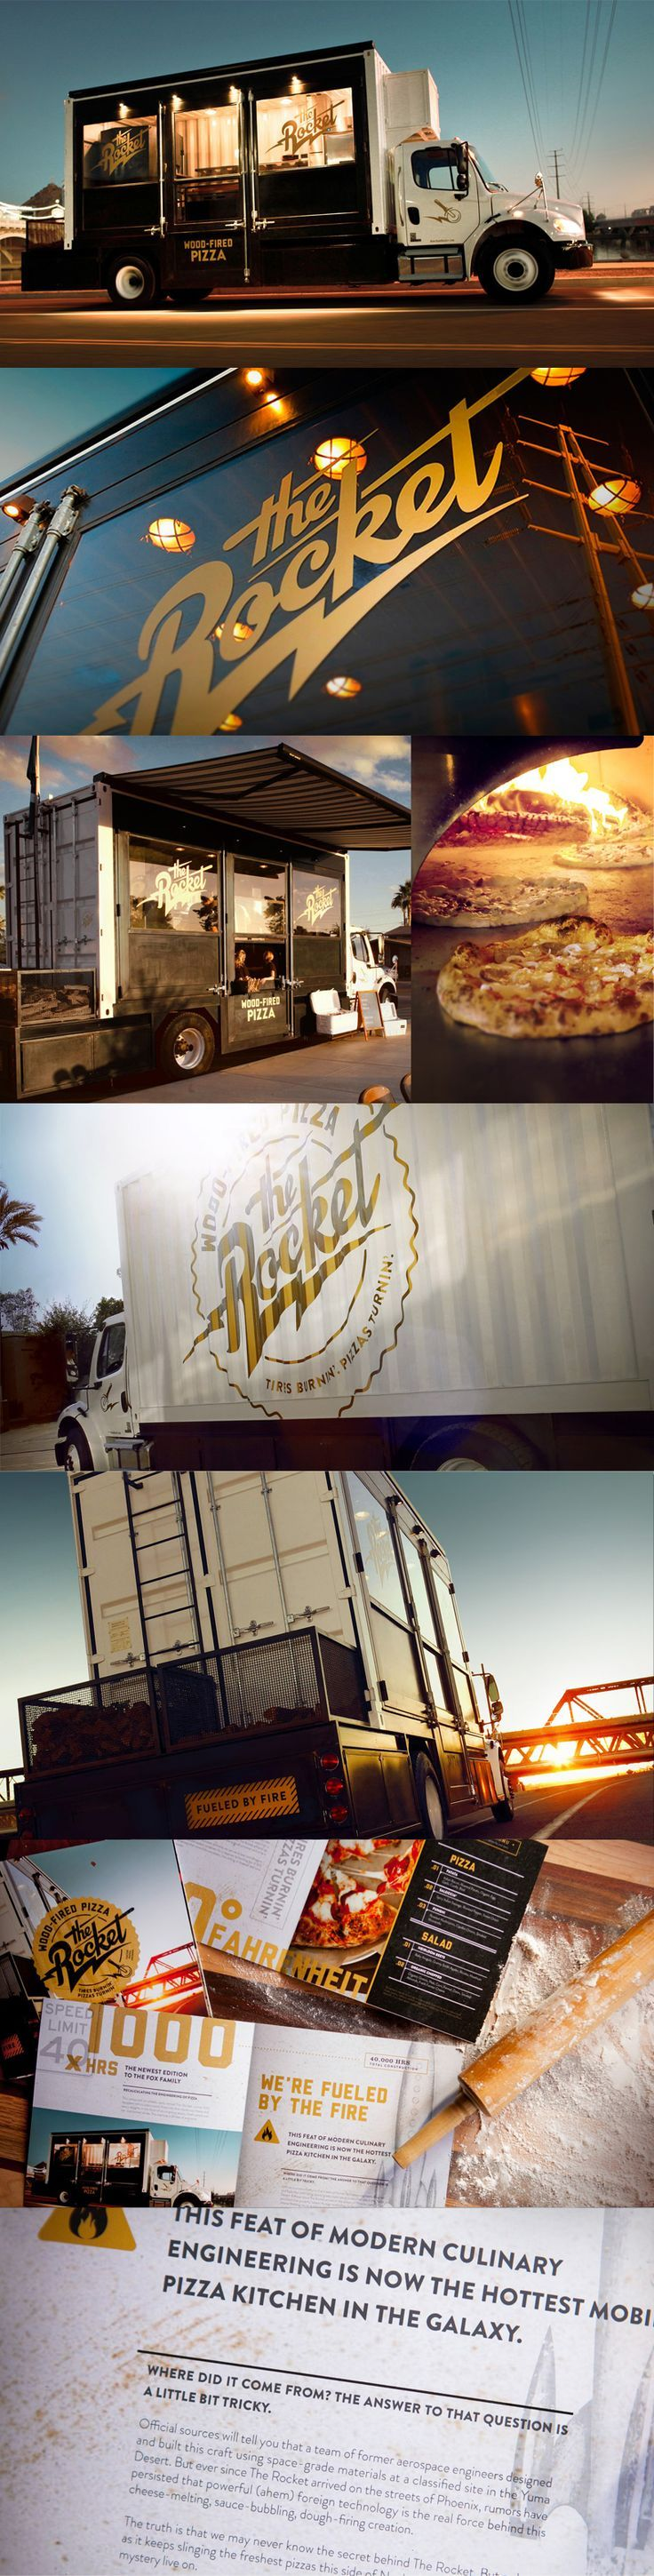 The Rocket. Wood-fired pizza in a truck.